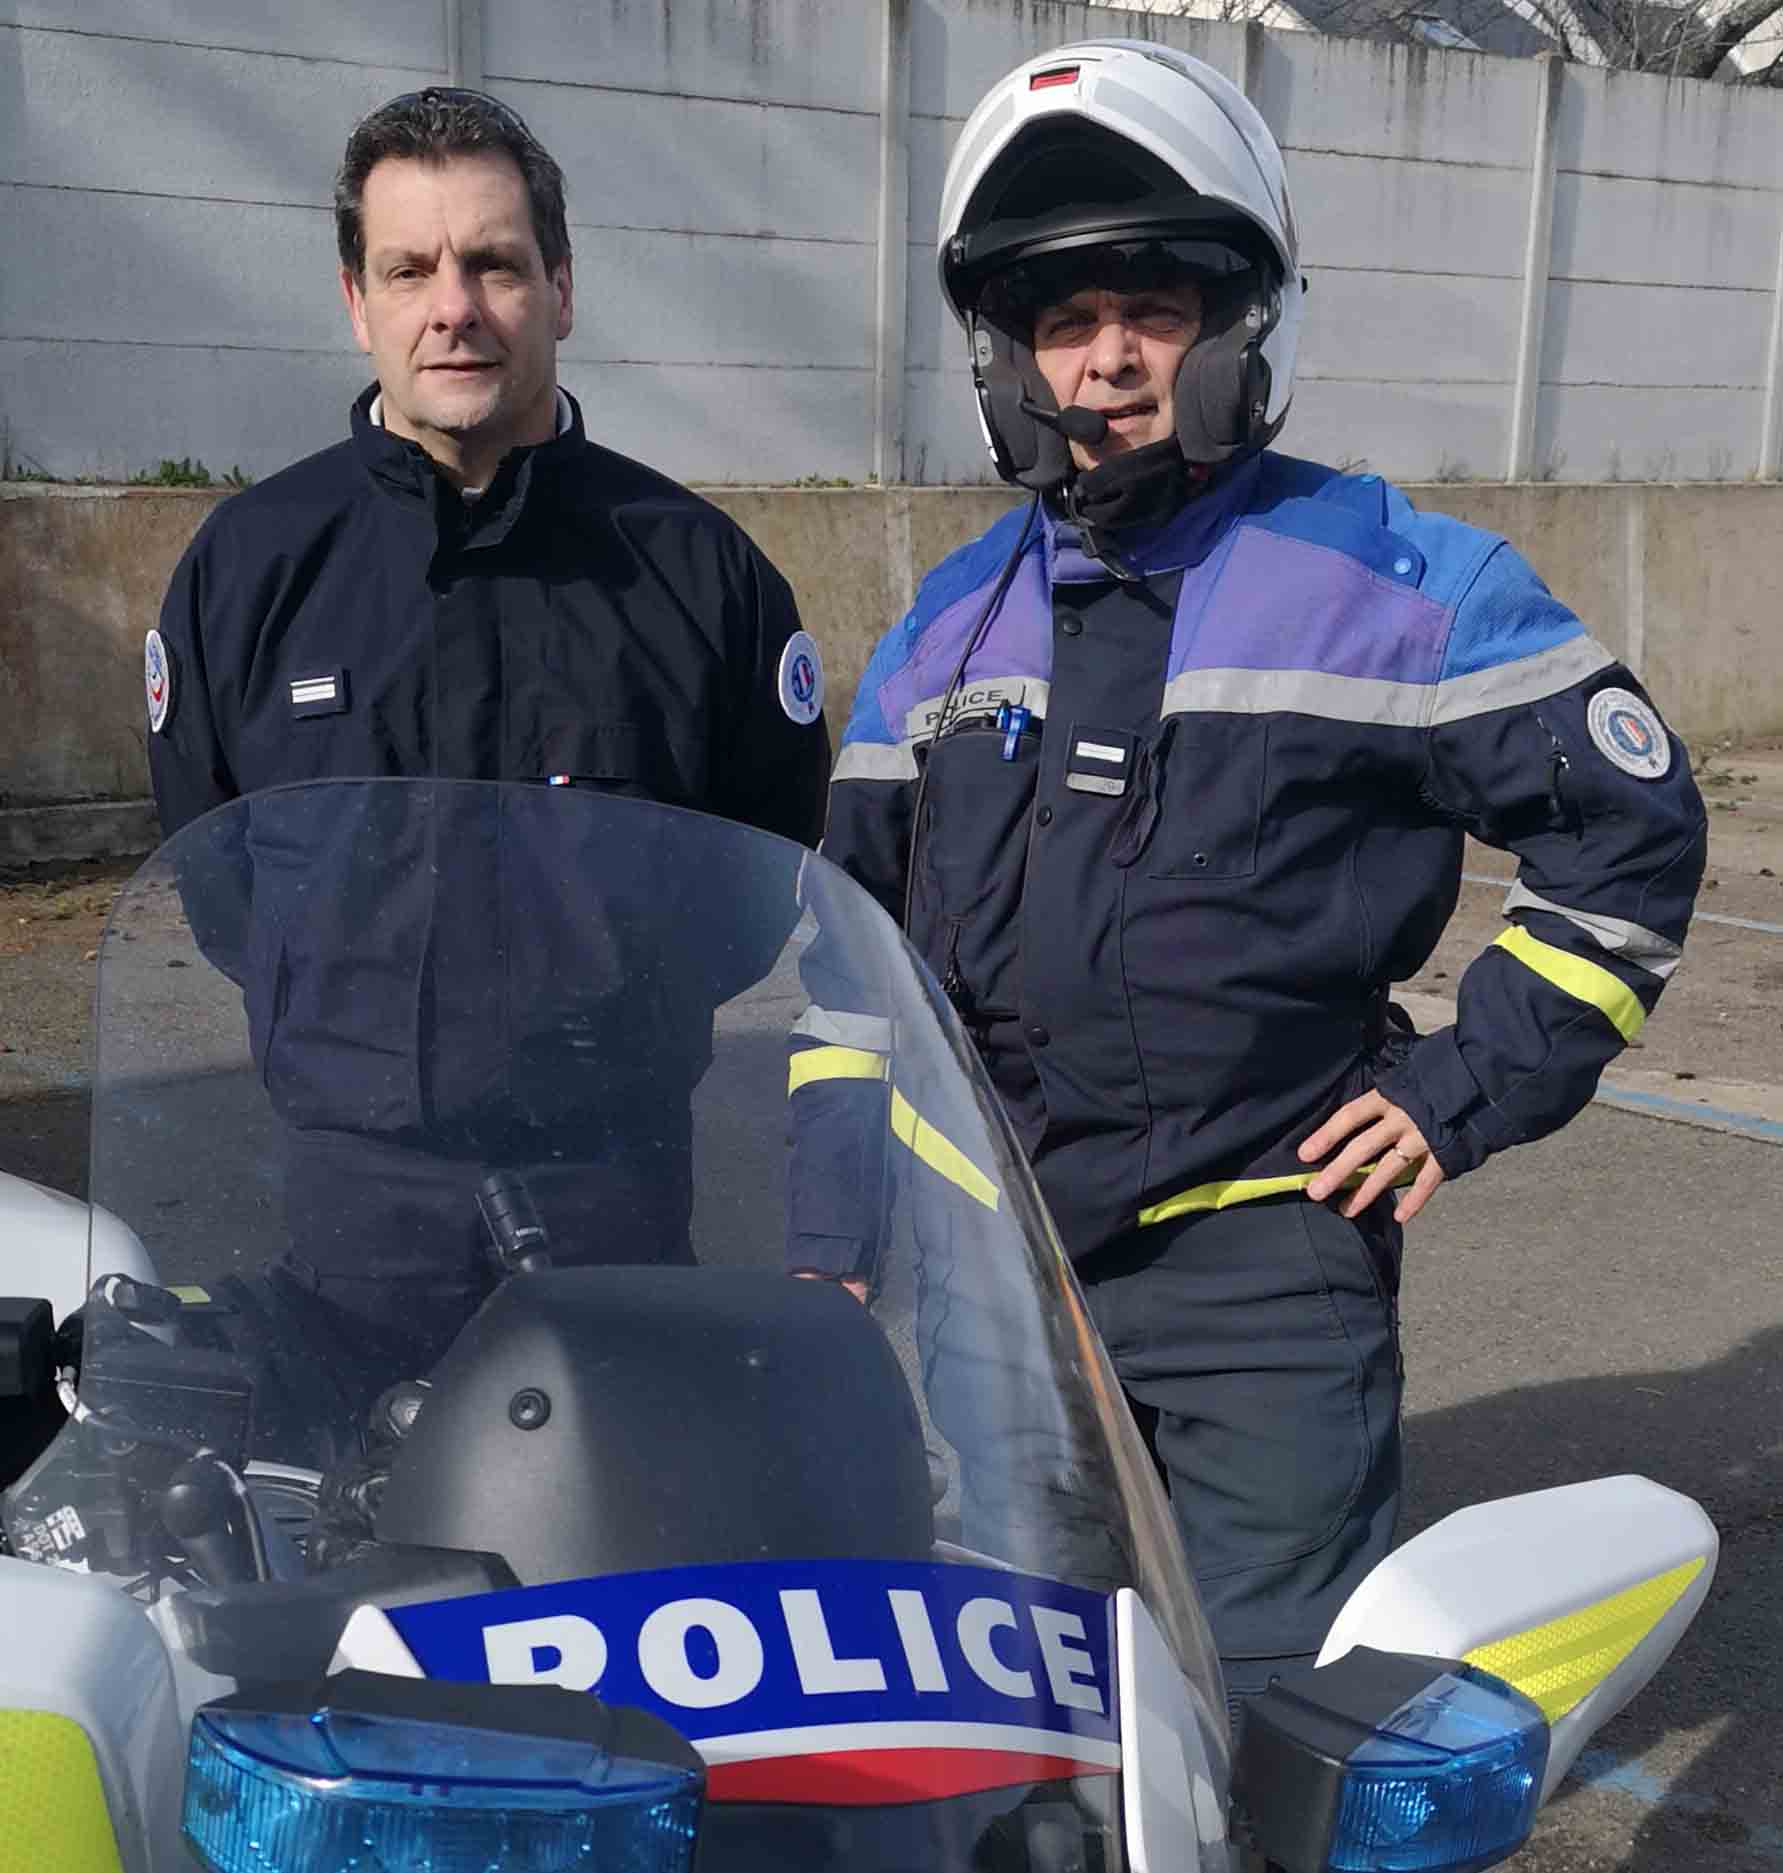 La place des motards à Orléans : Motos : attention, dangers ?